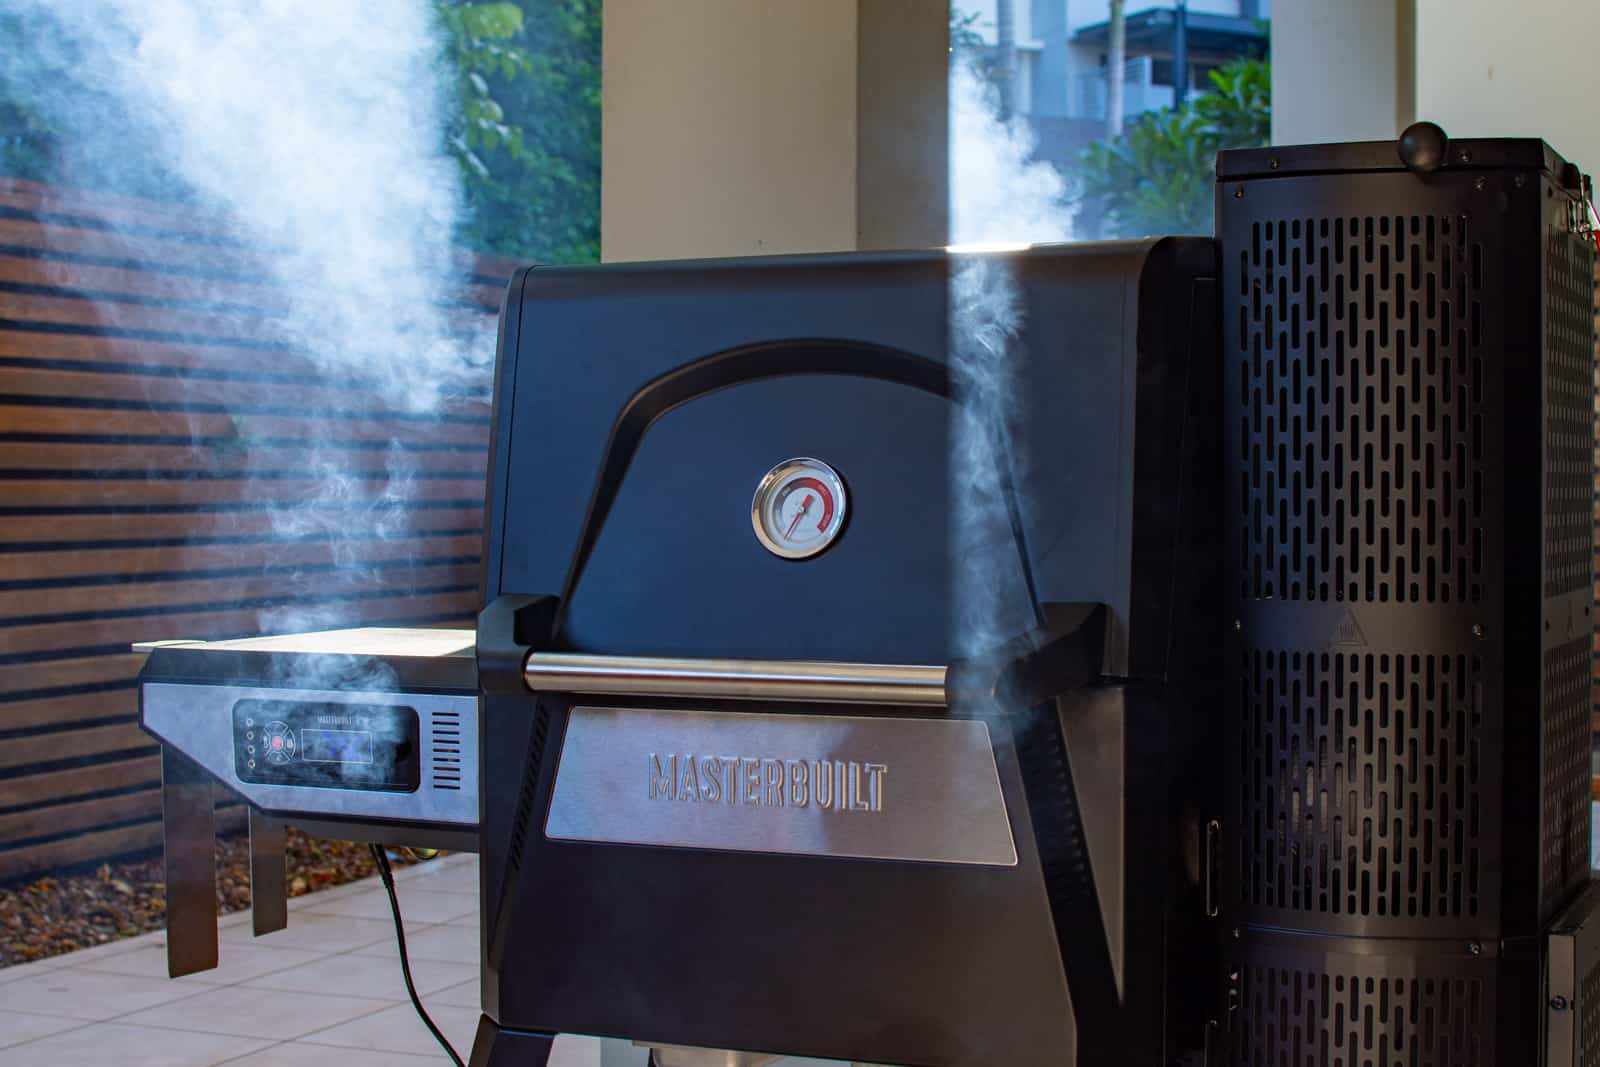 masterbuilt BBQ with smoked coming from it